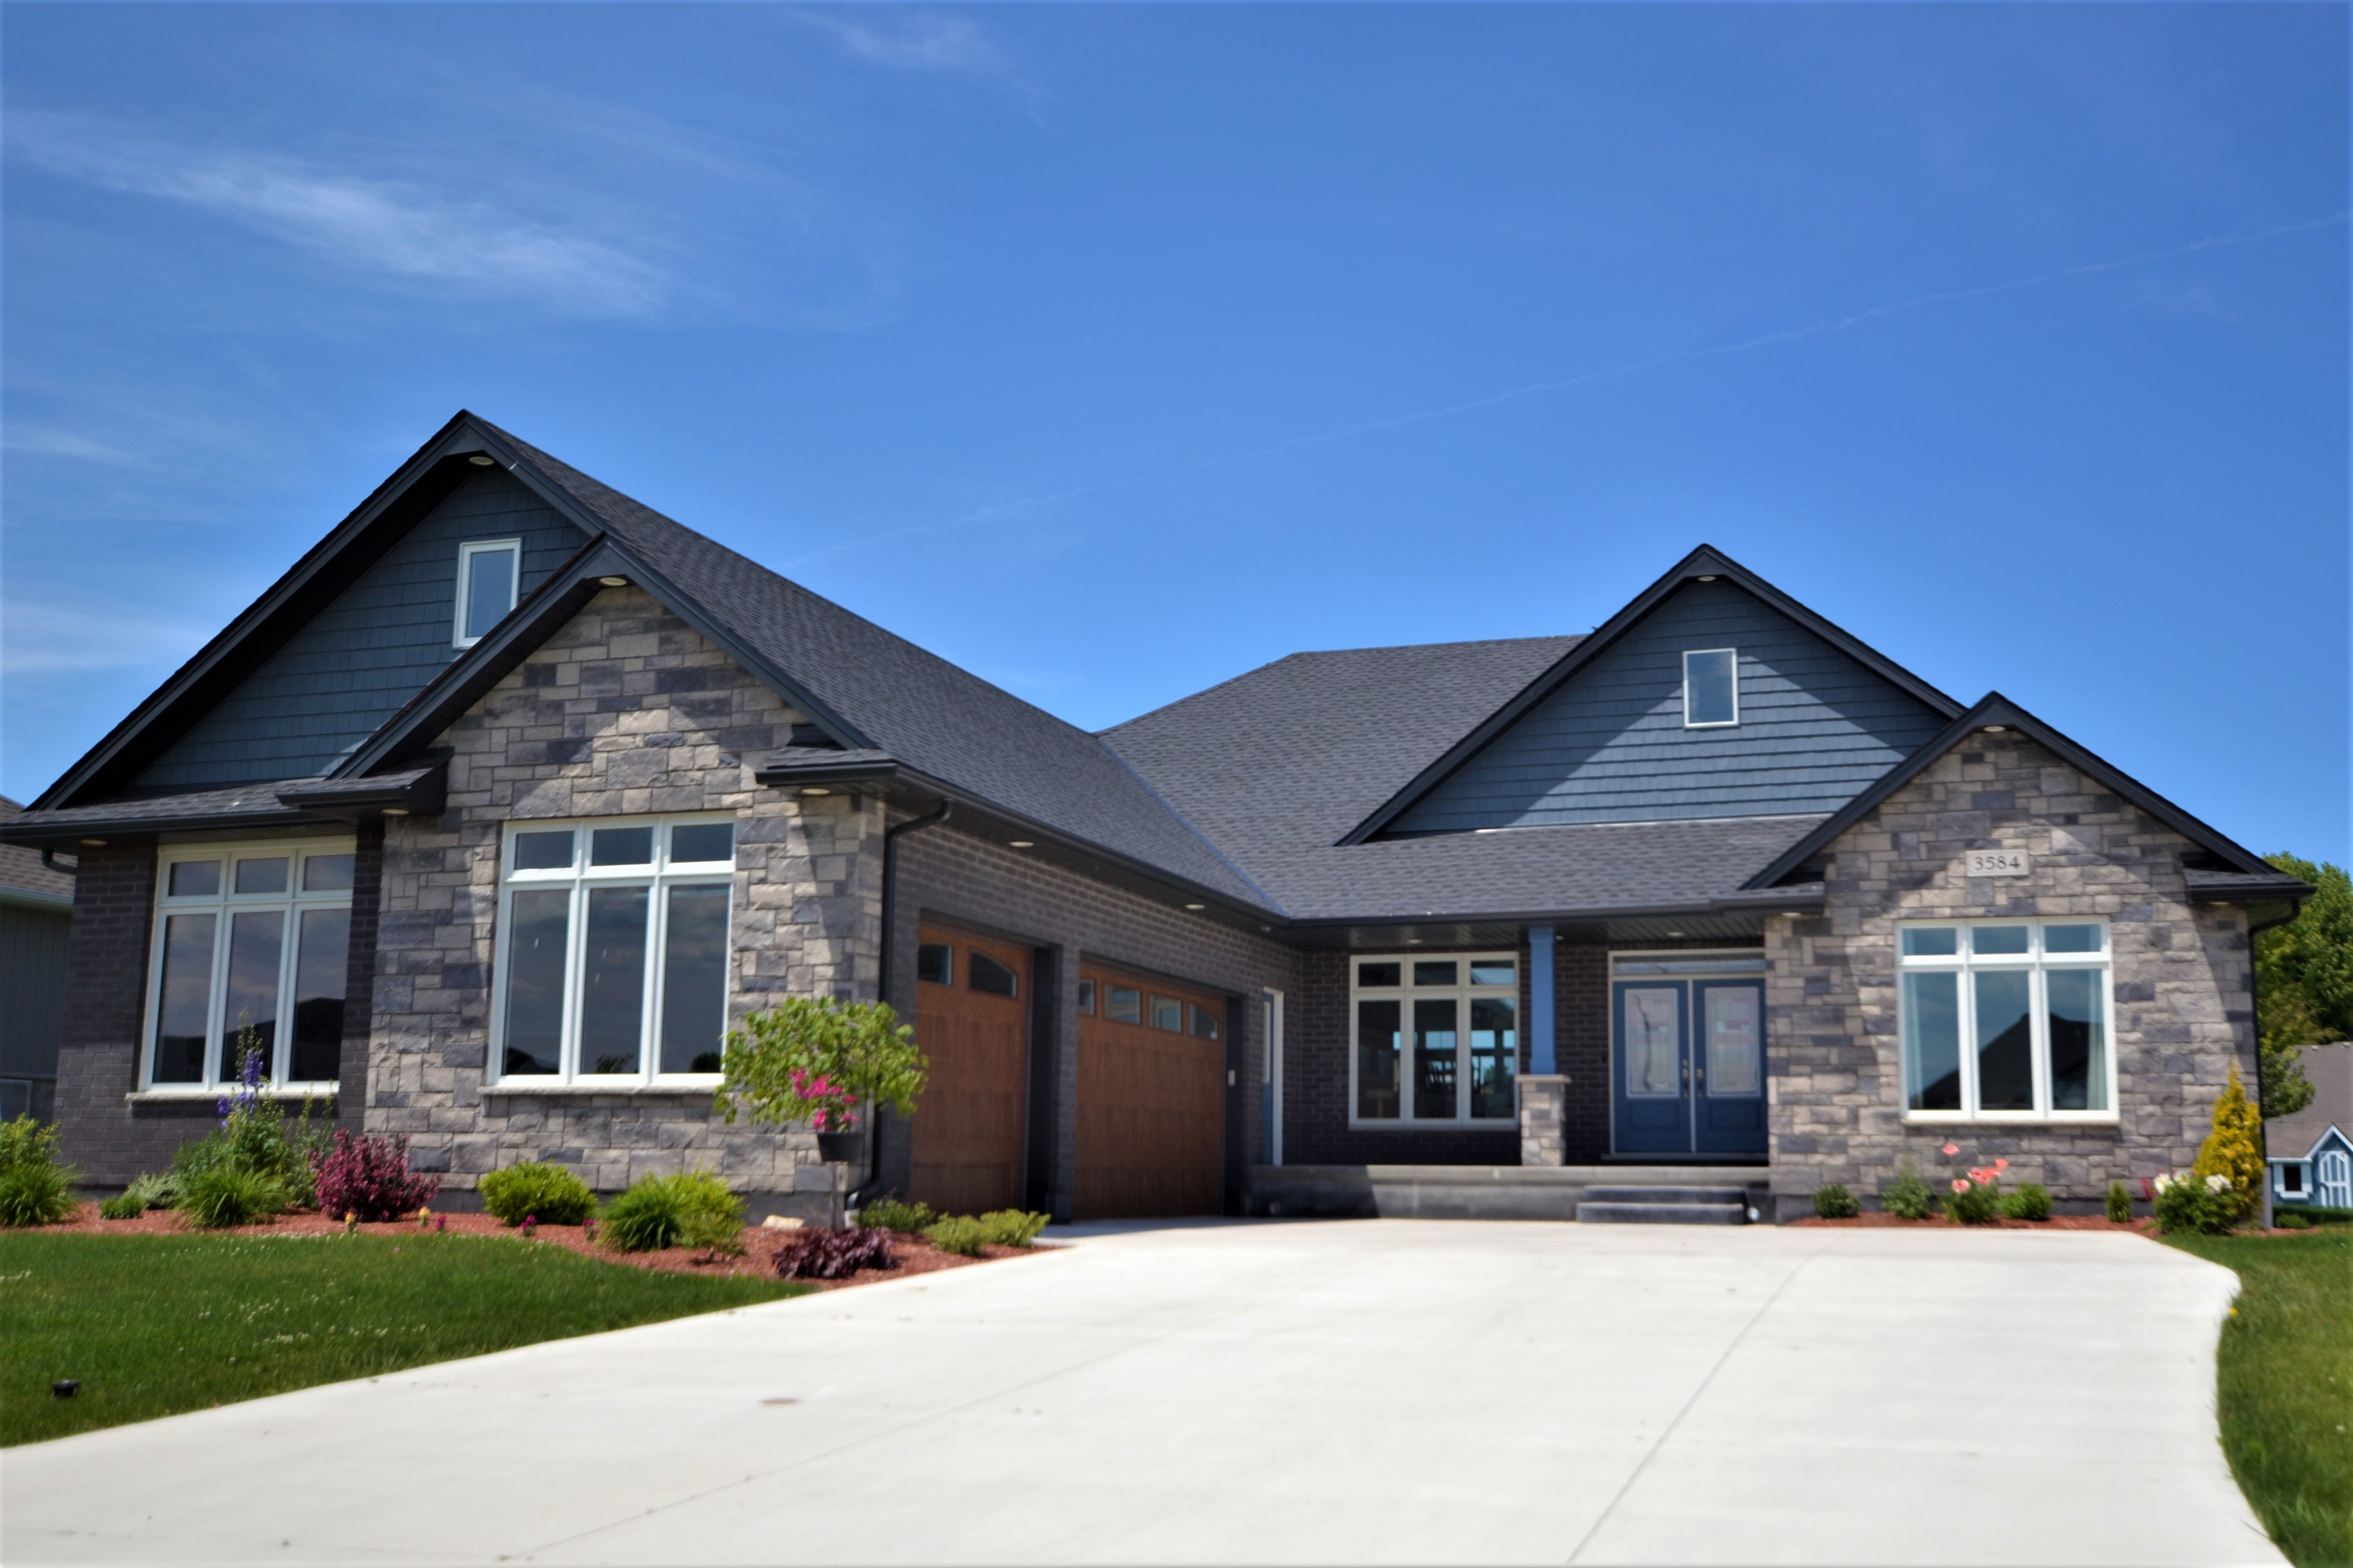 Stone and siding bungalow located at 3584 Lincolnshire in Camlachie.